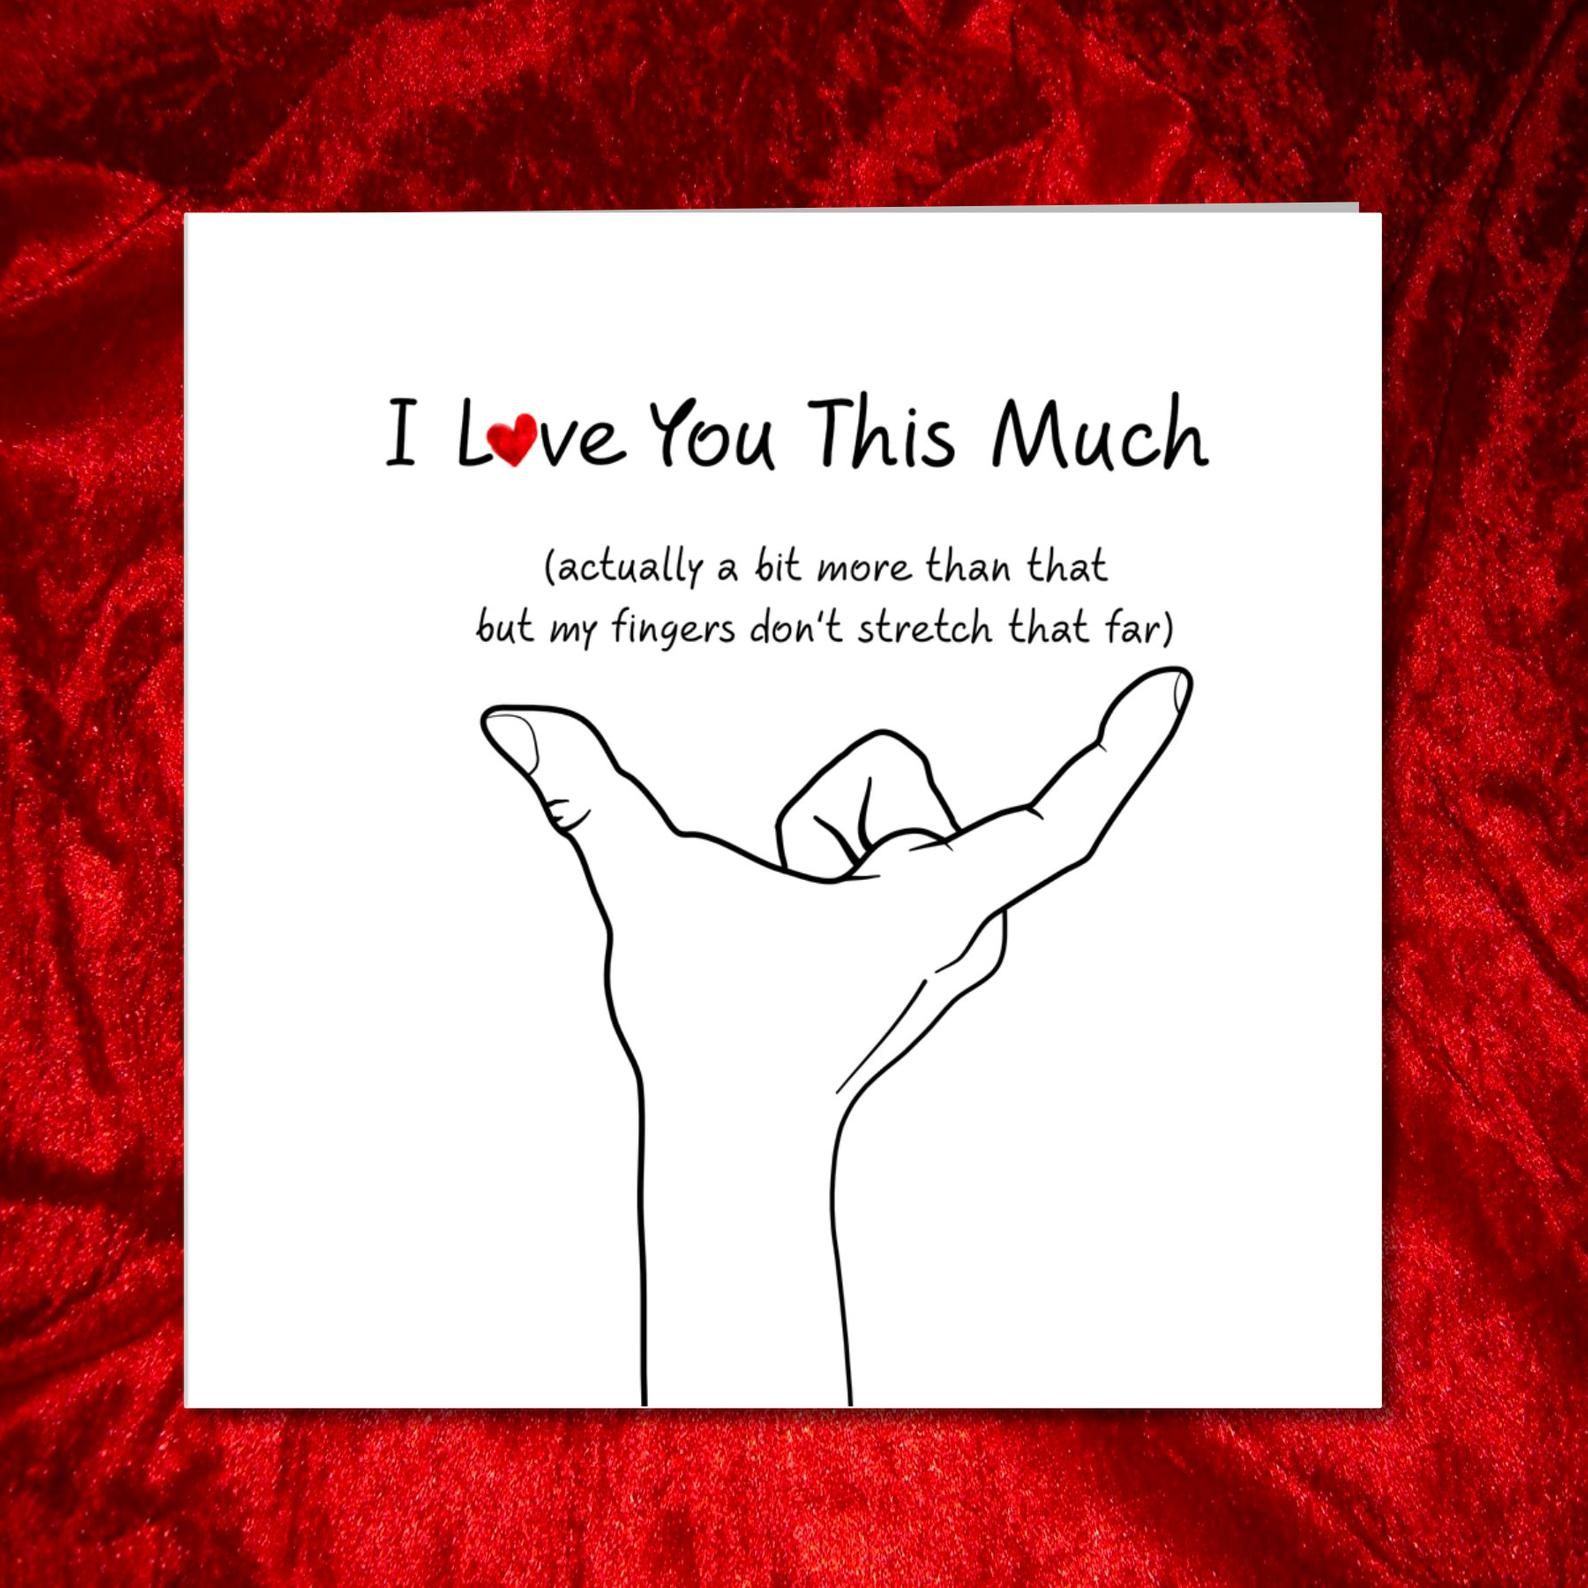 Love you this much card - Husband or boyfriend card - Valentine's Day, Birthday or Anniversary card - Lover love alone. Miss you 6 inches